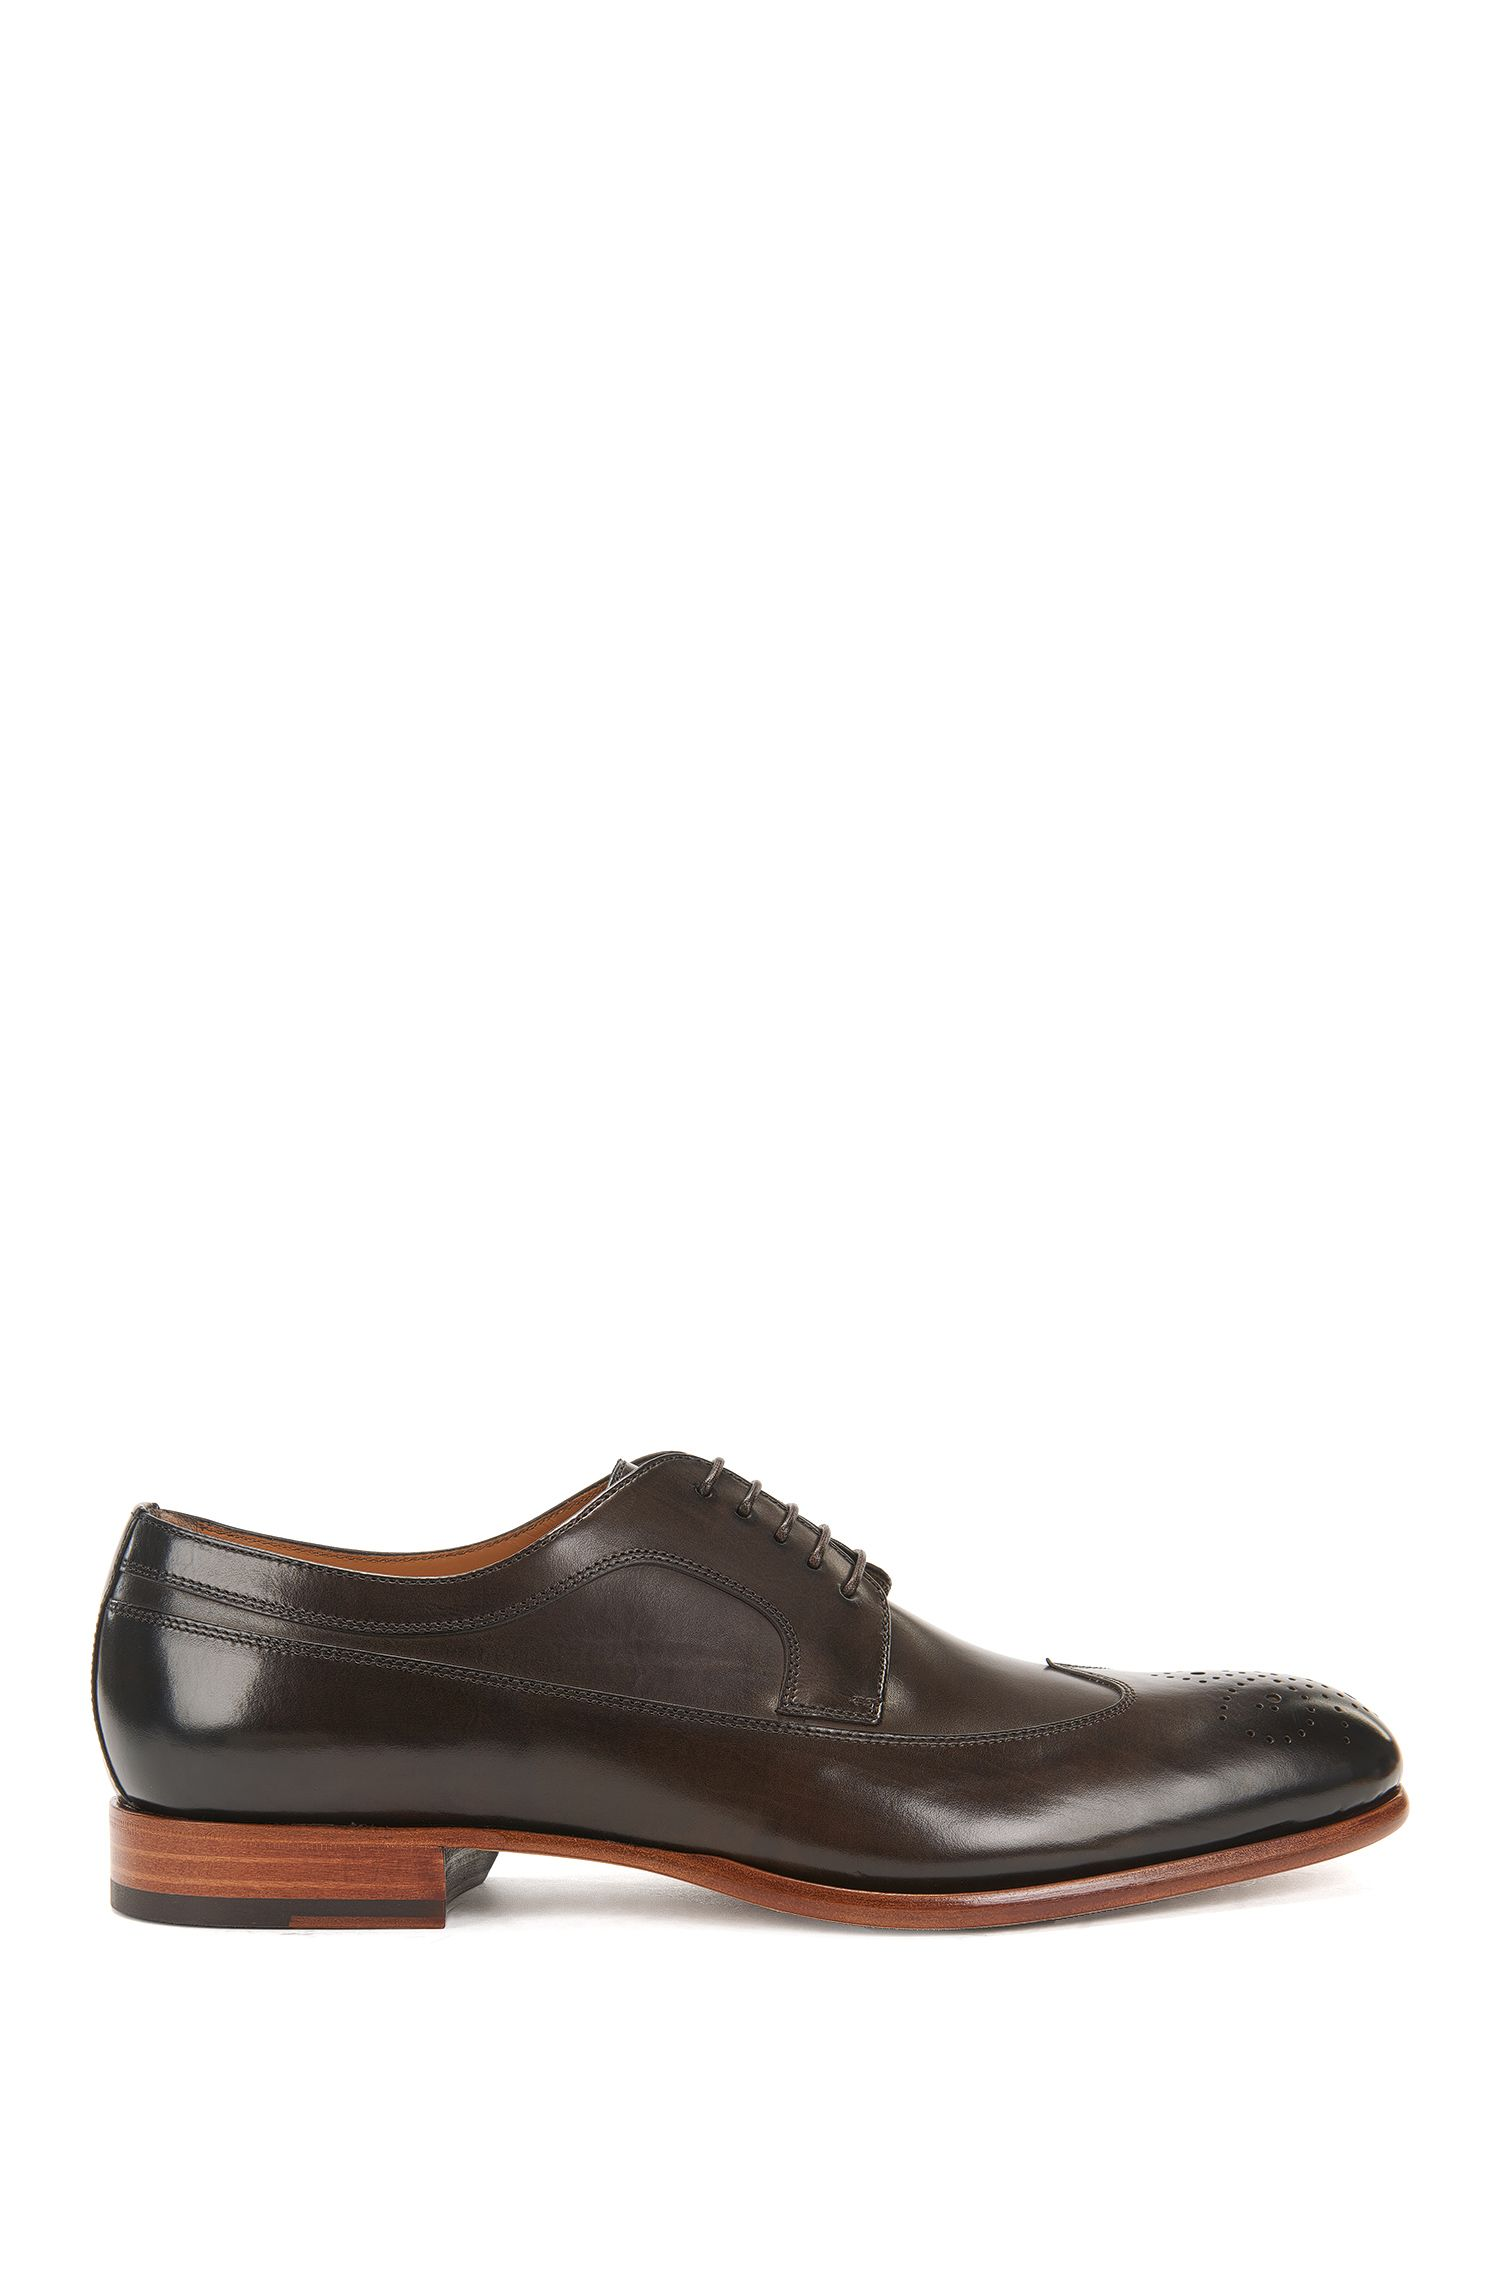 Leather Derby shoes with brogueing